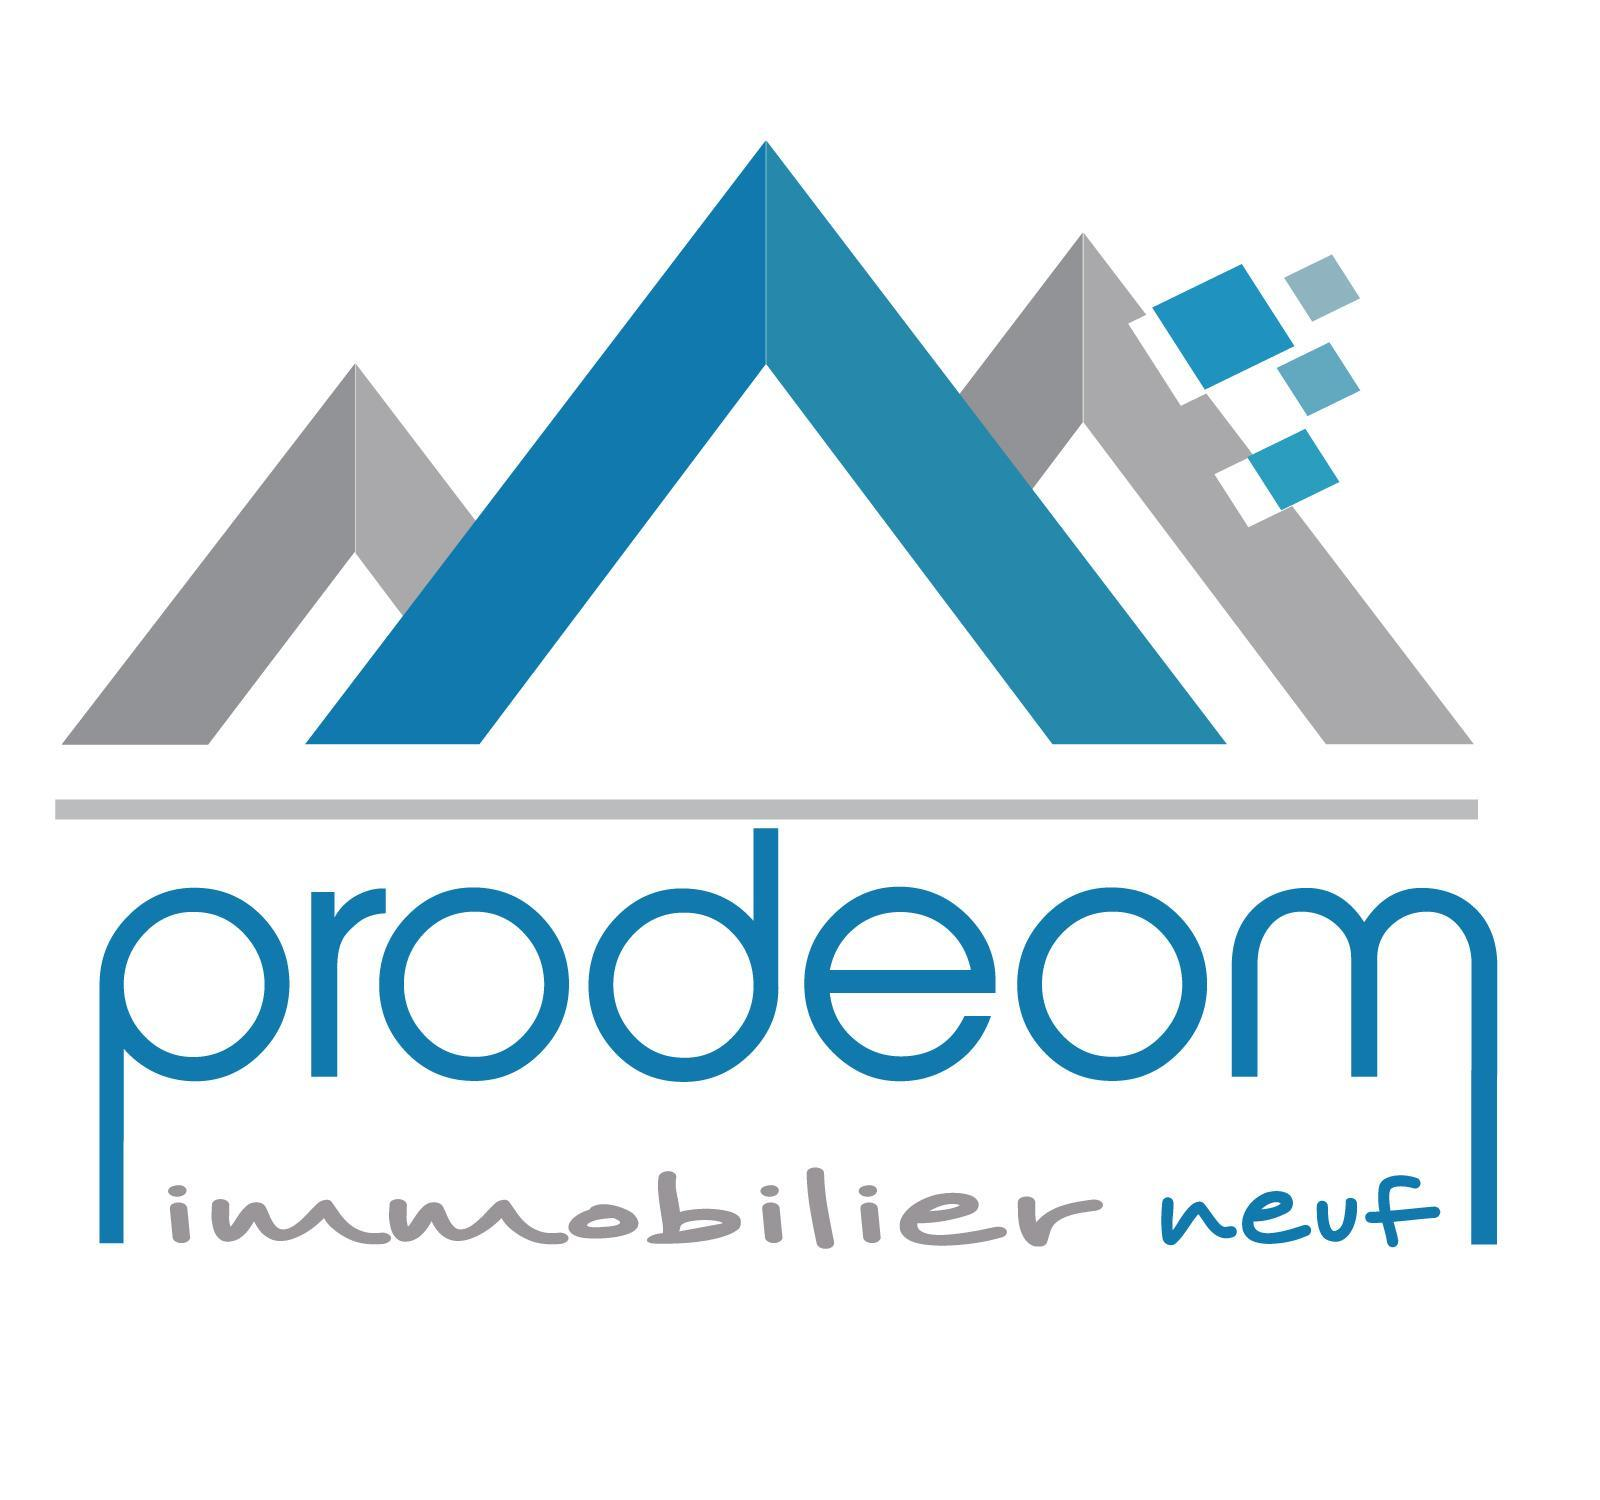 Prodeom immobilier